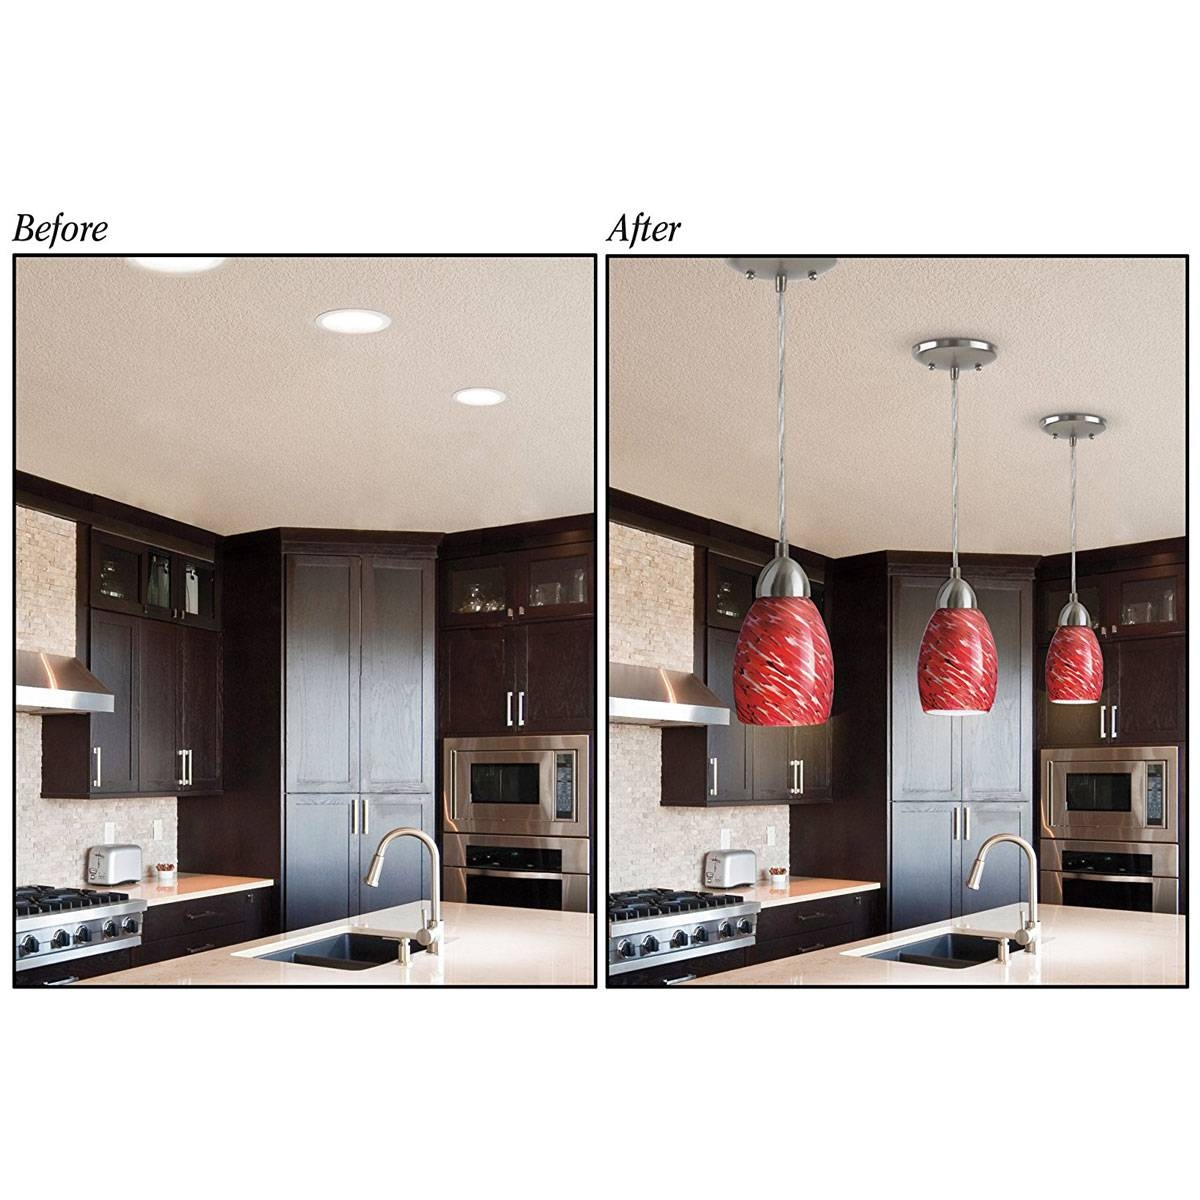 Recessed Lighting: 10 Best Convert Recessed Light To Pendant with regard to Recessed Lights to Pendant Lights (Image 10 of 15)